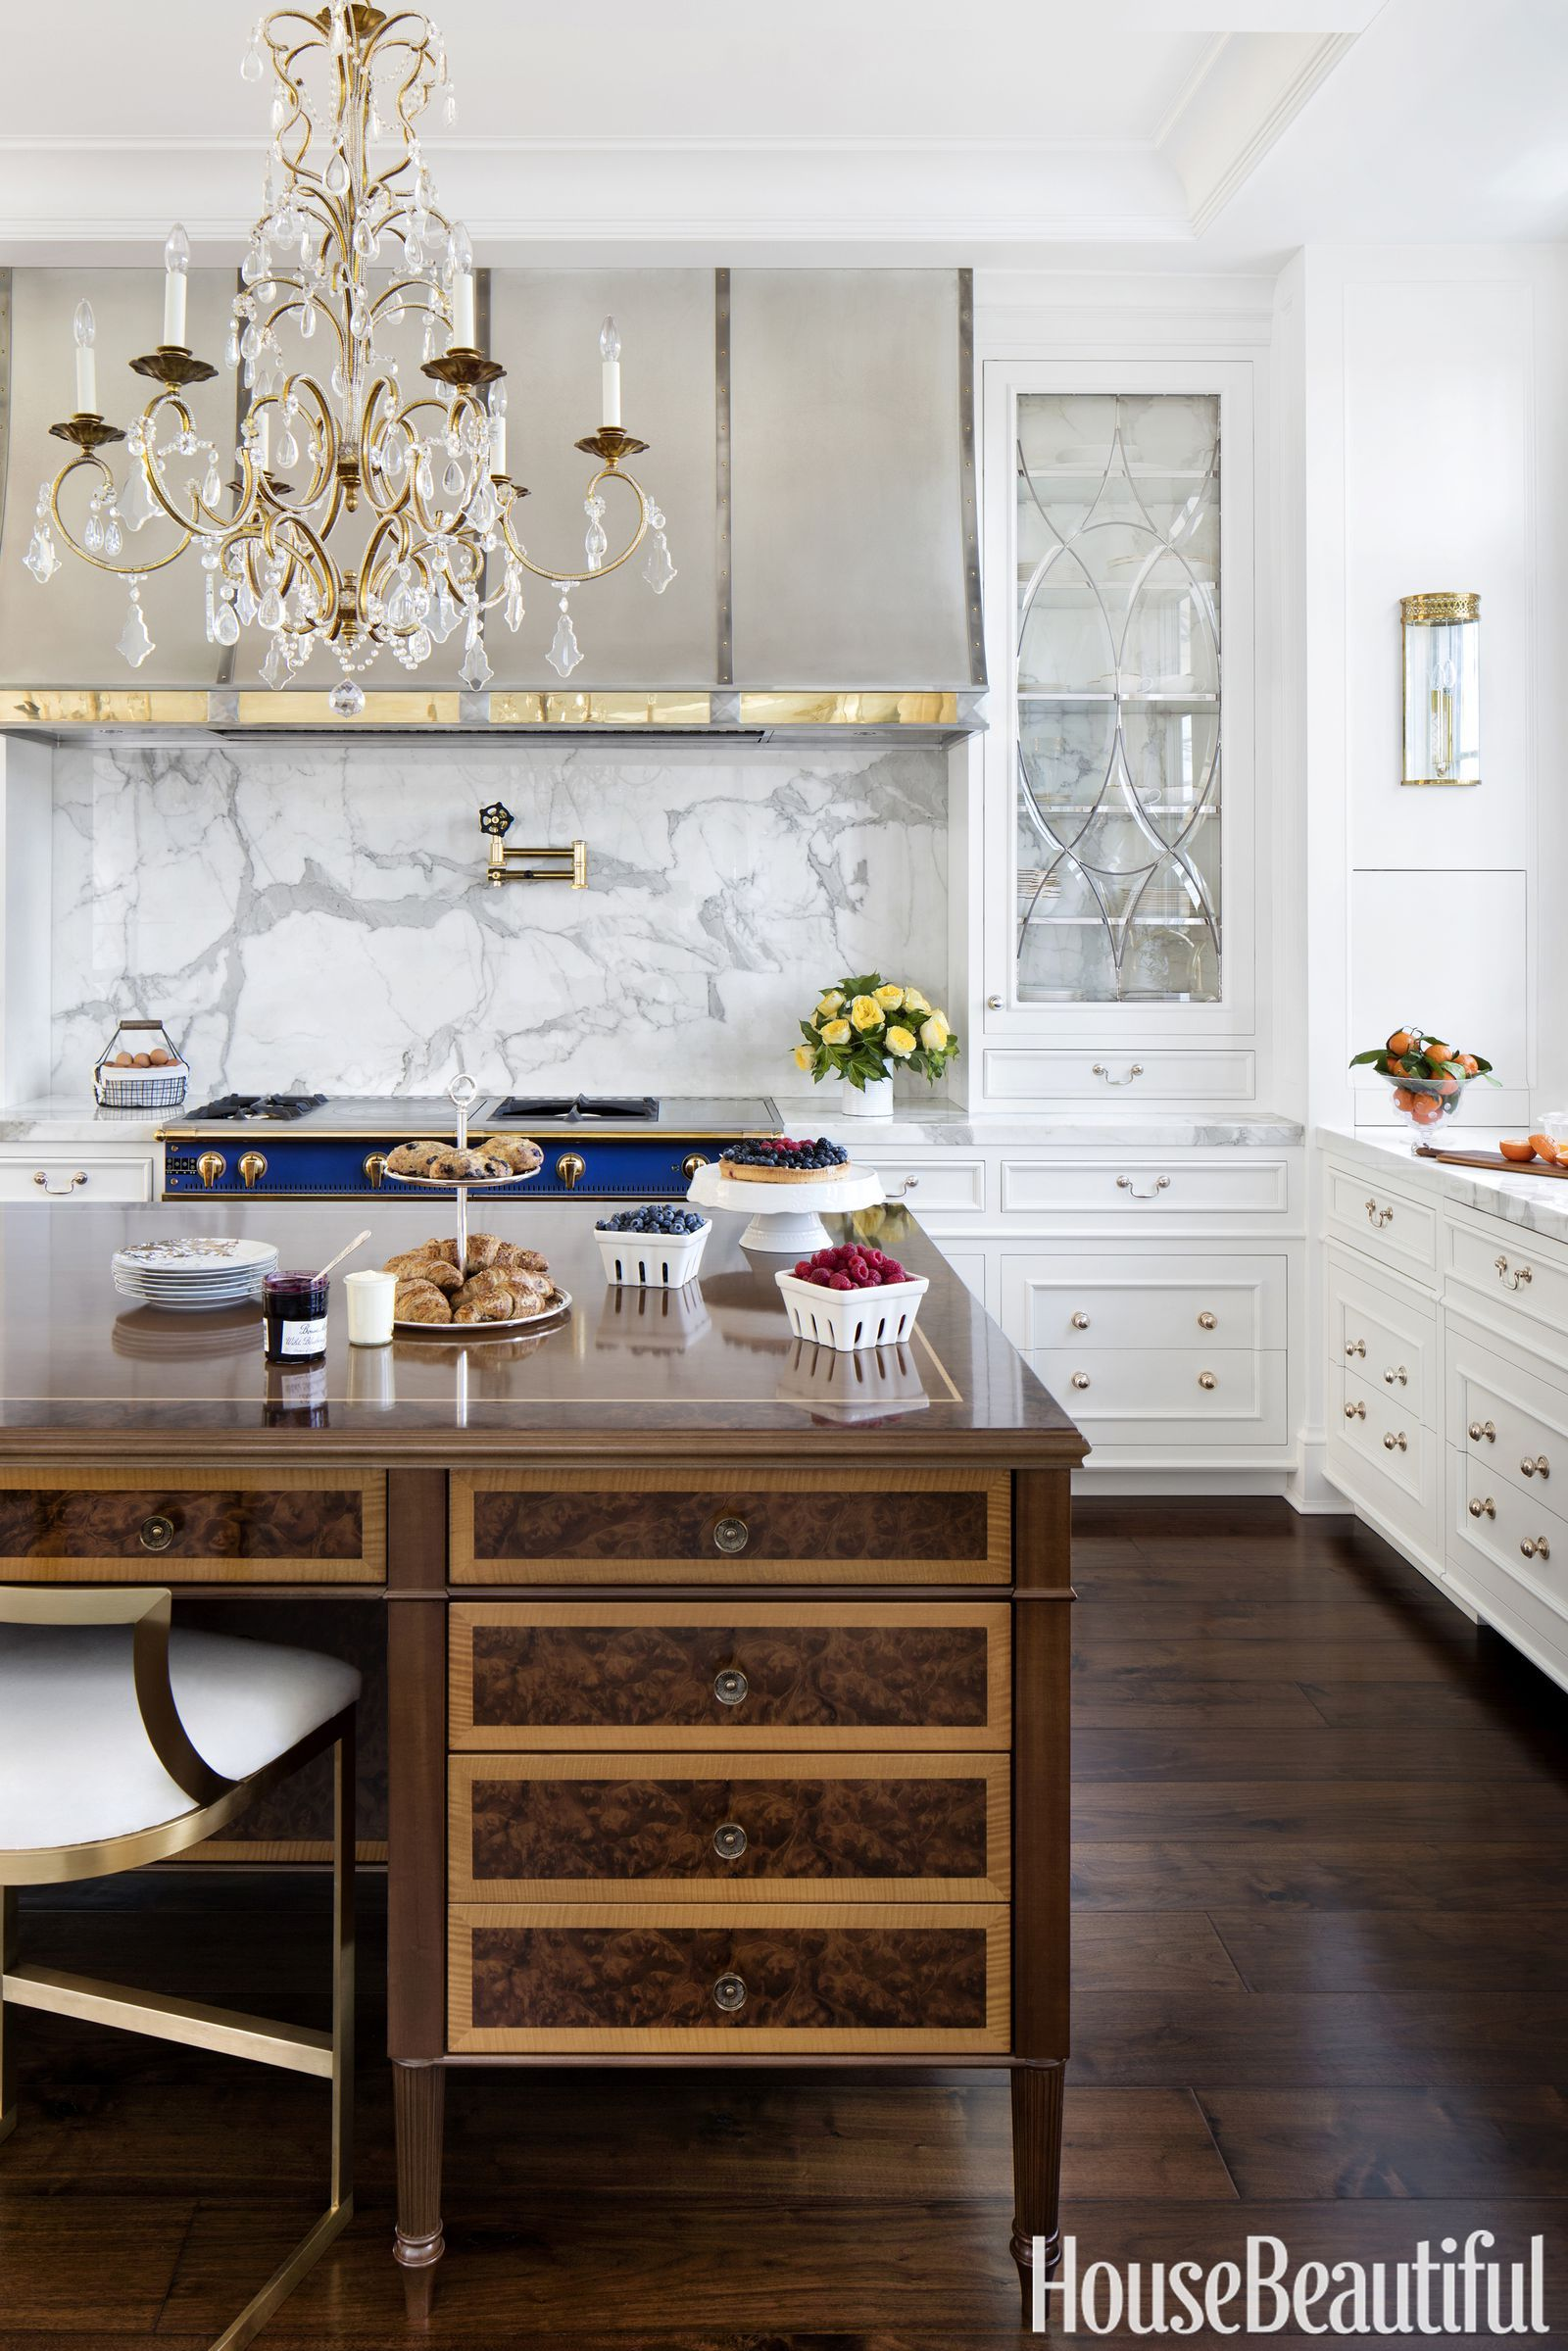 The Best Materials For Gorgeous Kitchen Countertops Design Your